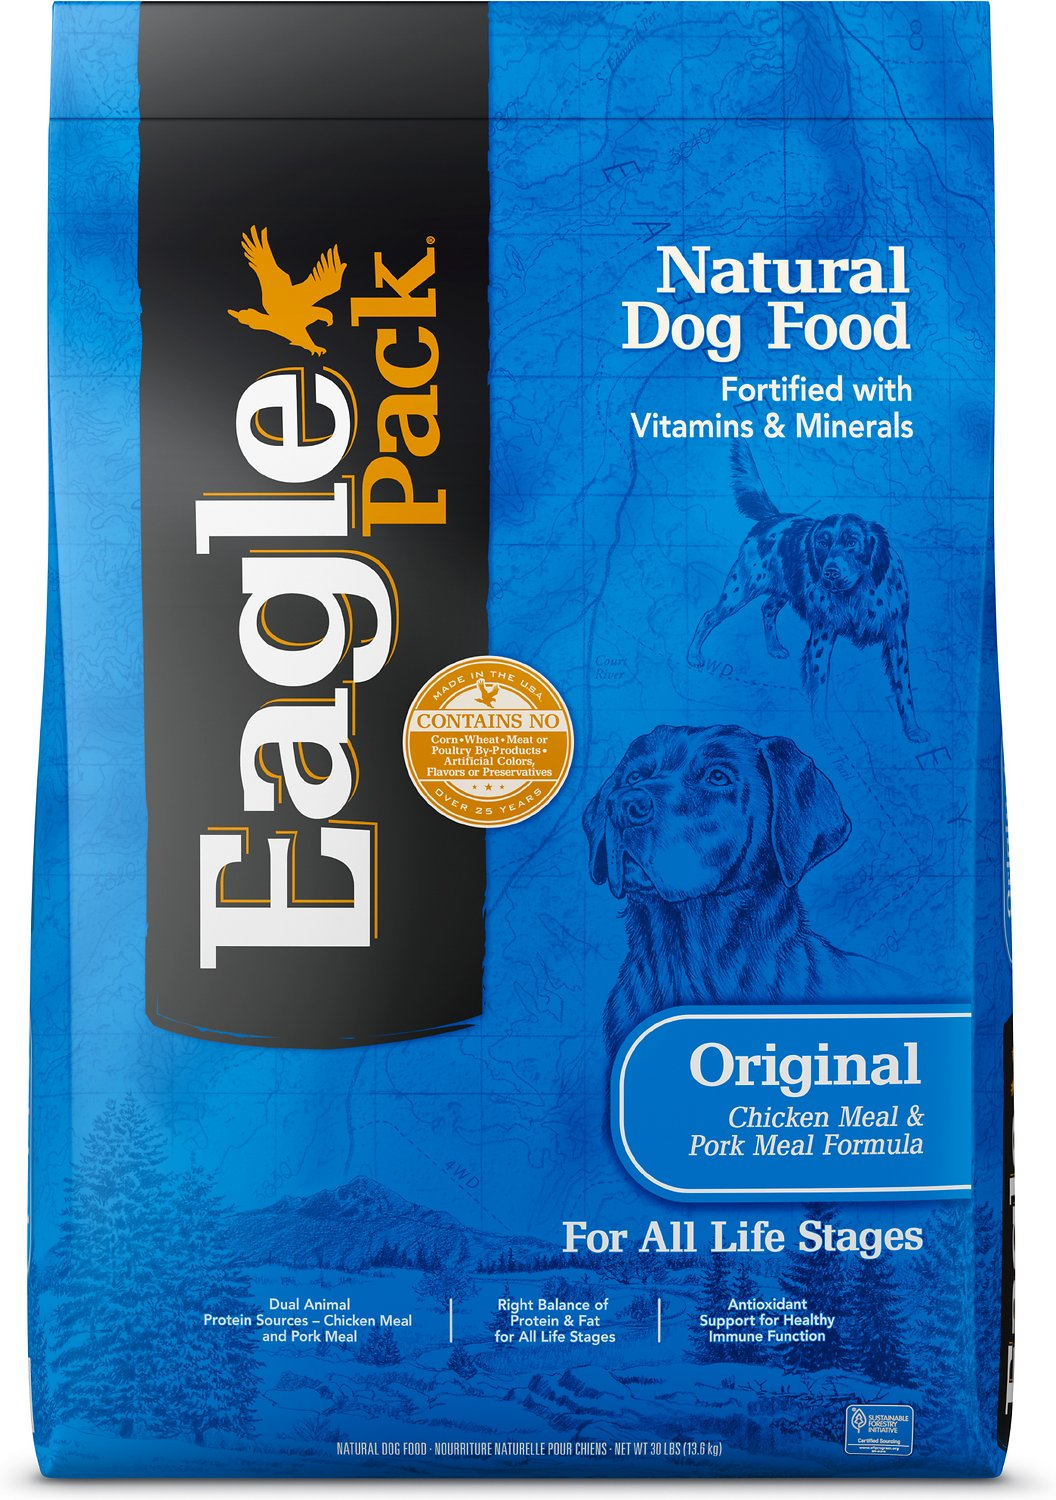 Eagle Pack Dog Food Review And Plete Ysis 789x530 Jpg